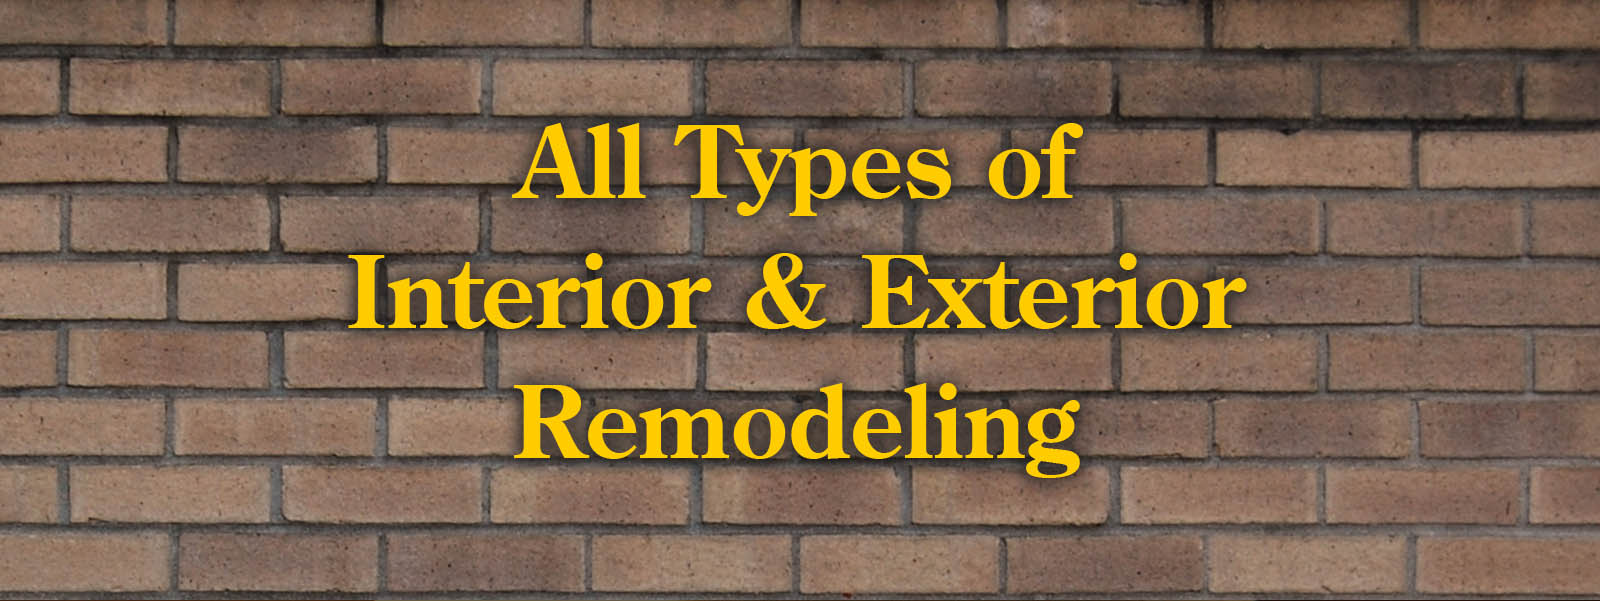 All types of remodeling and home renovation throughout Atlanta, Decatur, Gwinnett County, Dekalb County and surrounding areas.